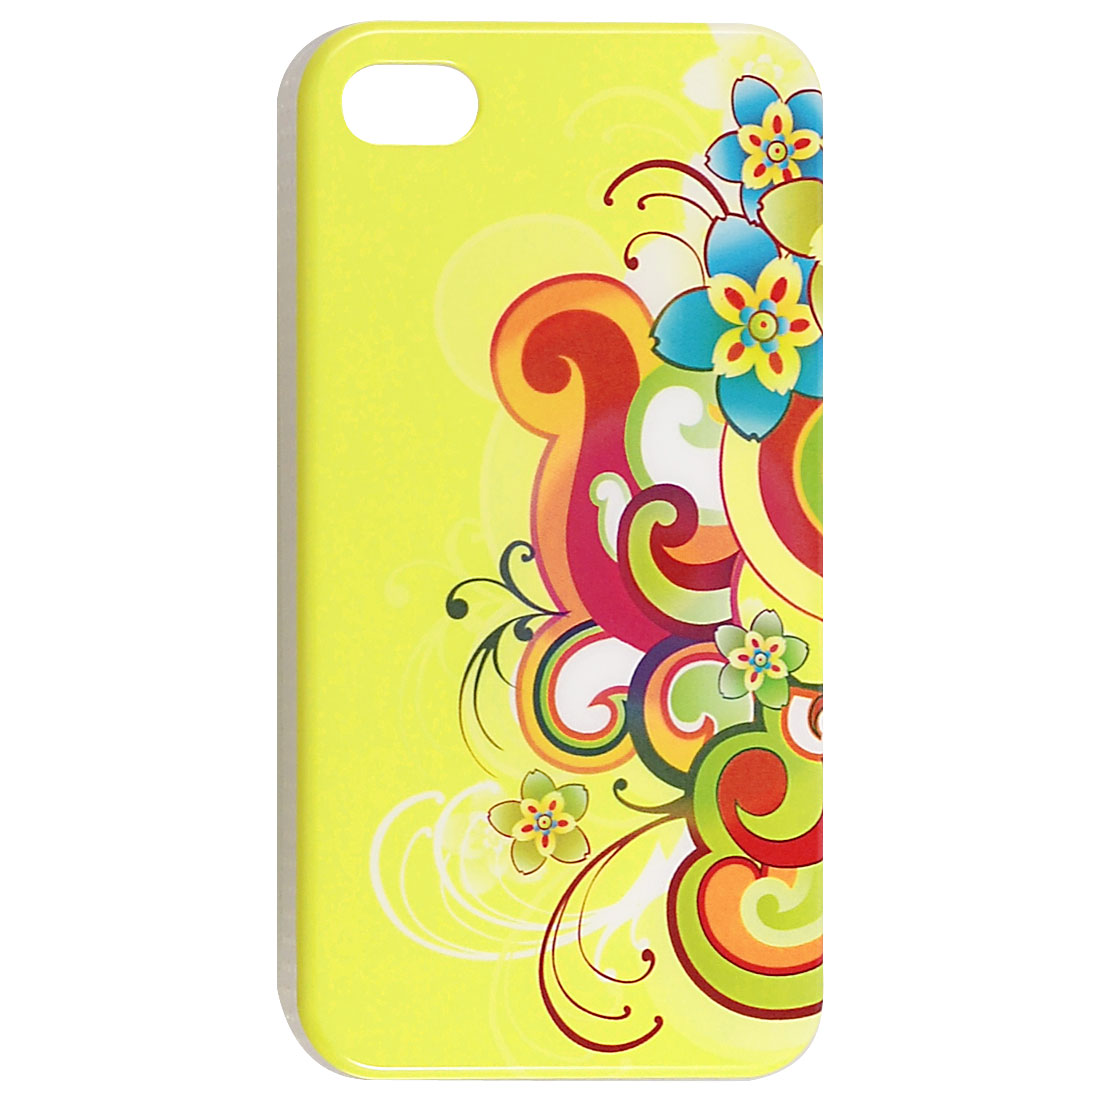 IMD Colorful Flower Pattern Protective Hard Plastic Back Case for iPhone 4 4G 4S